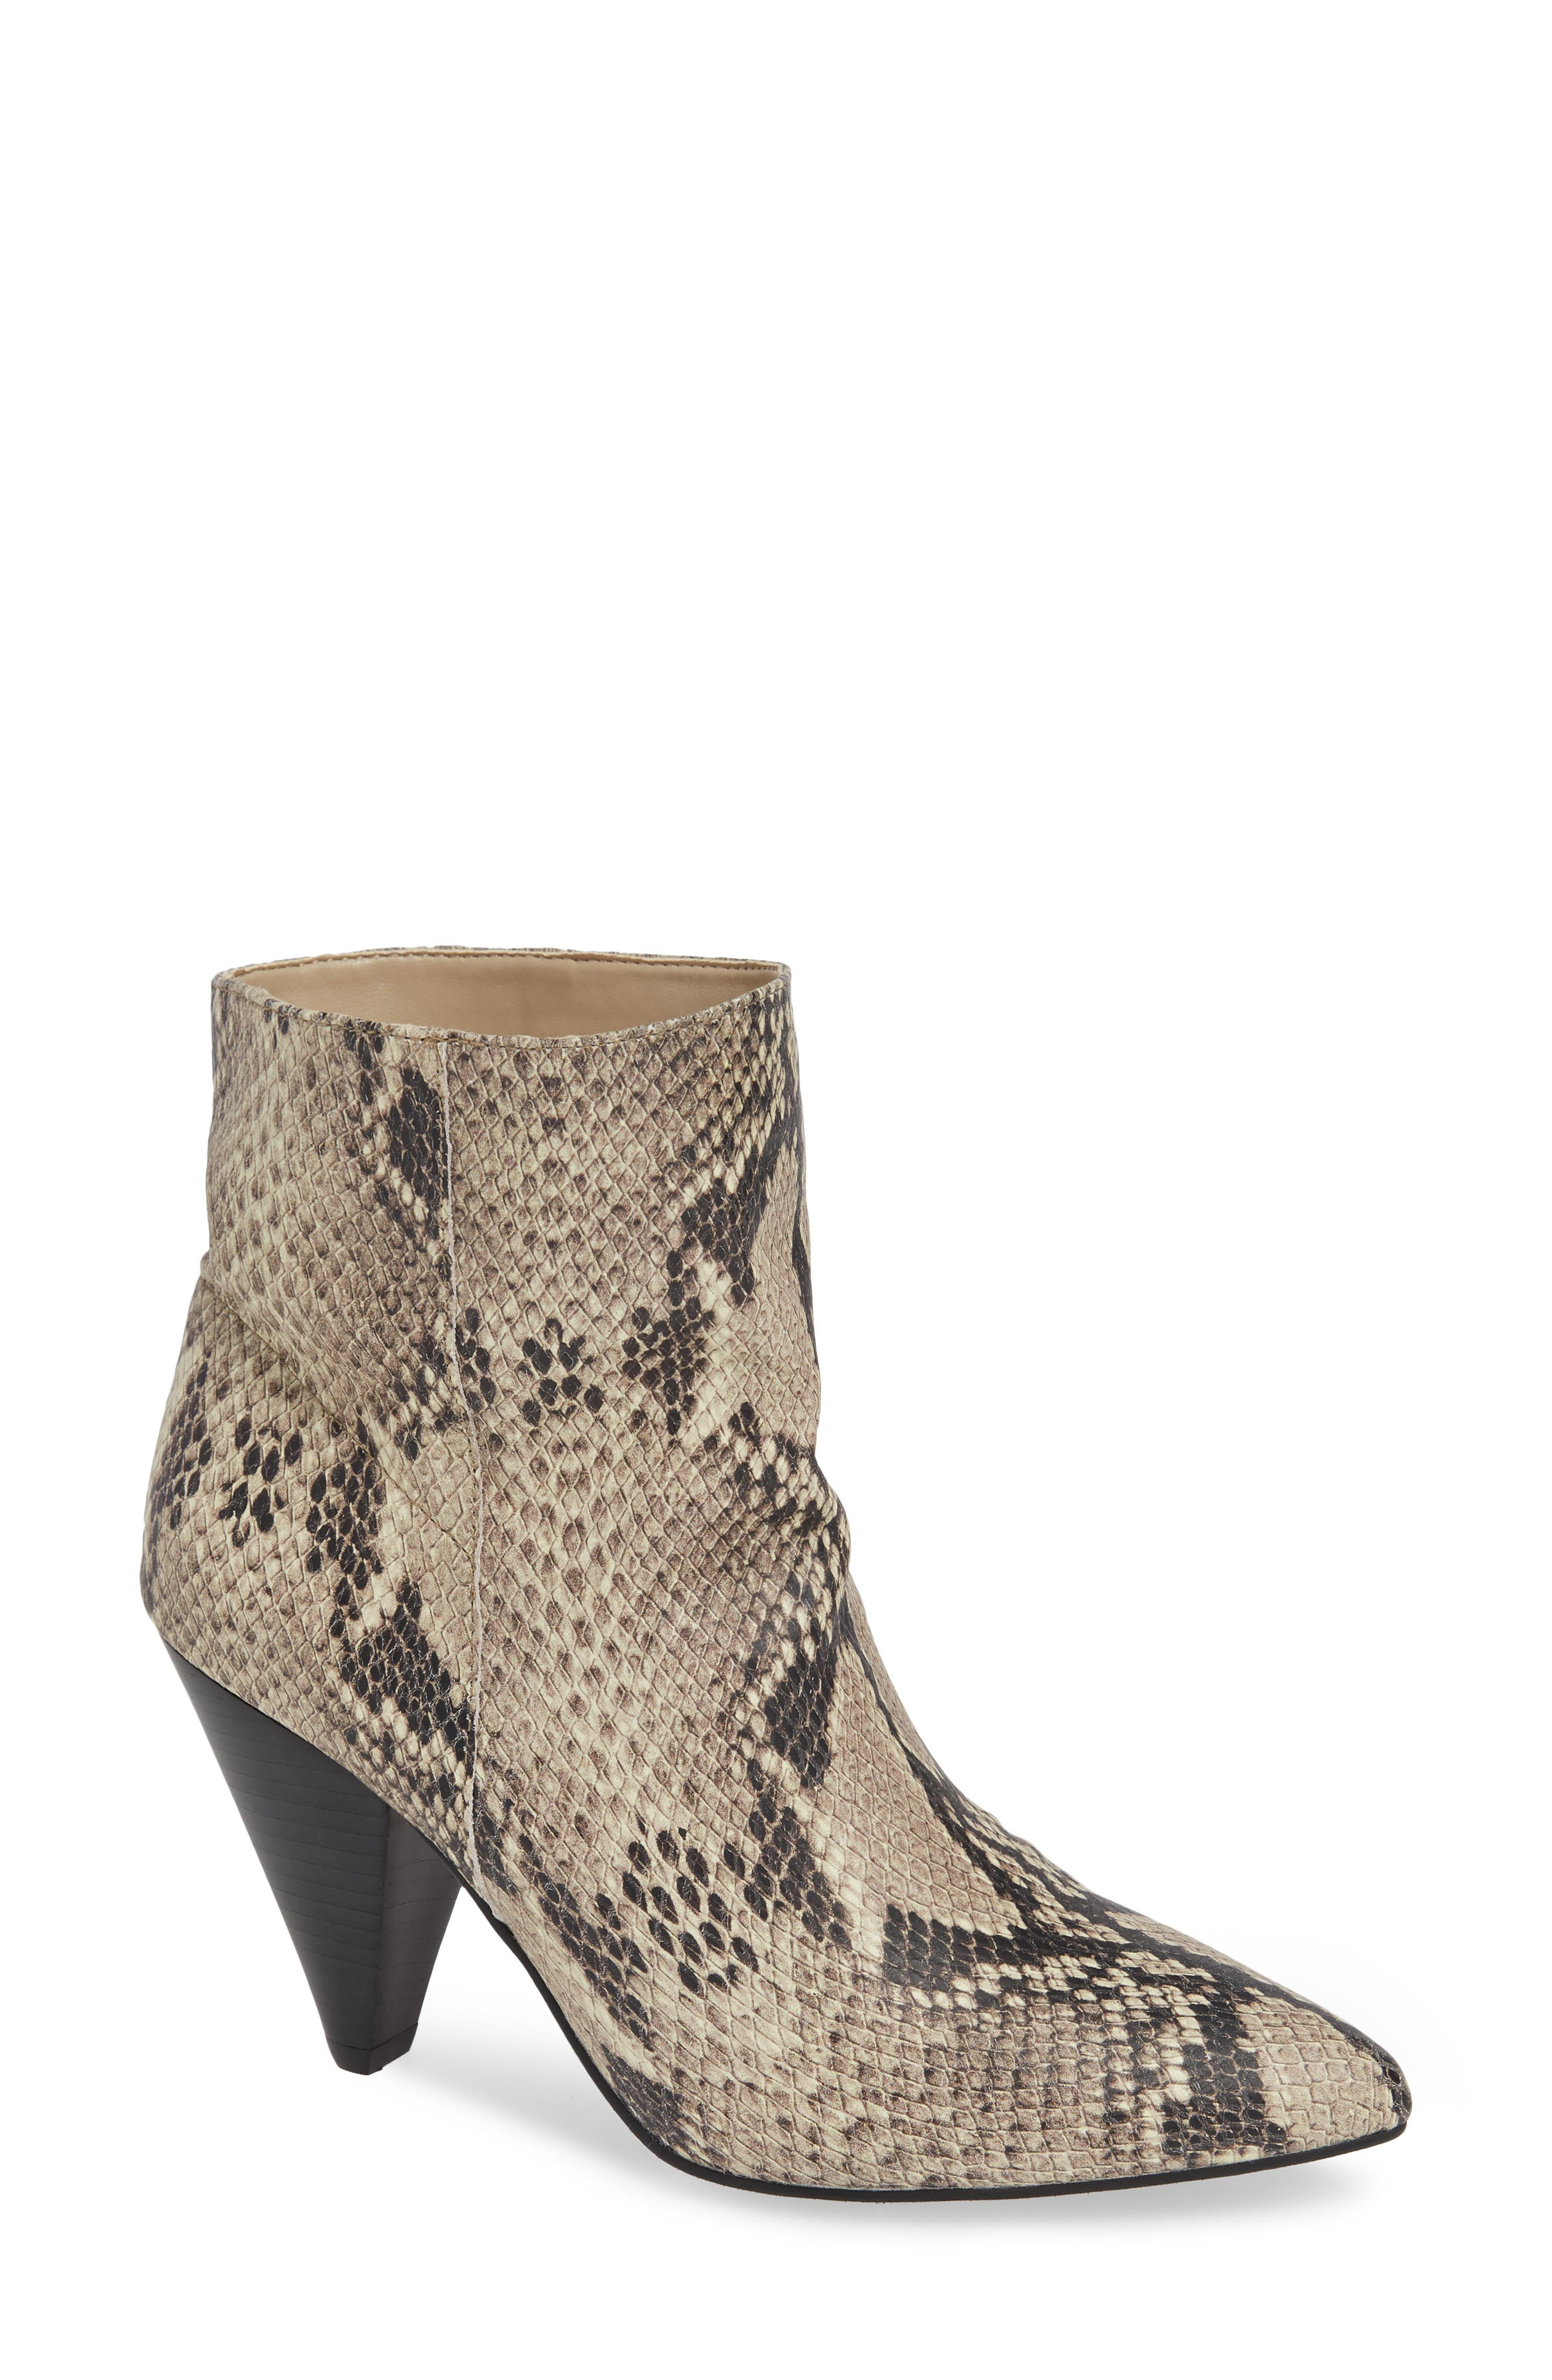 Scope Bootie,                             Main thumbnail 1, color,                             PRINTED NATURAL SNAKE LEATHER